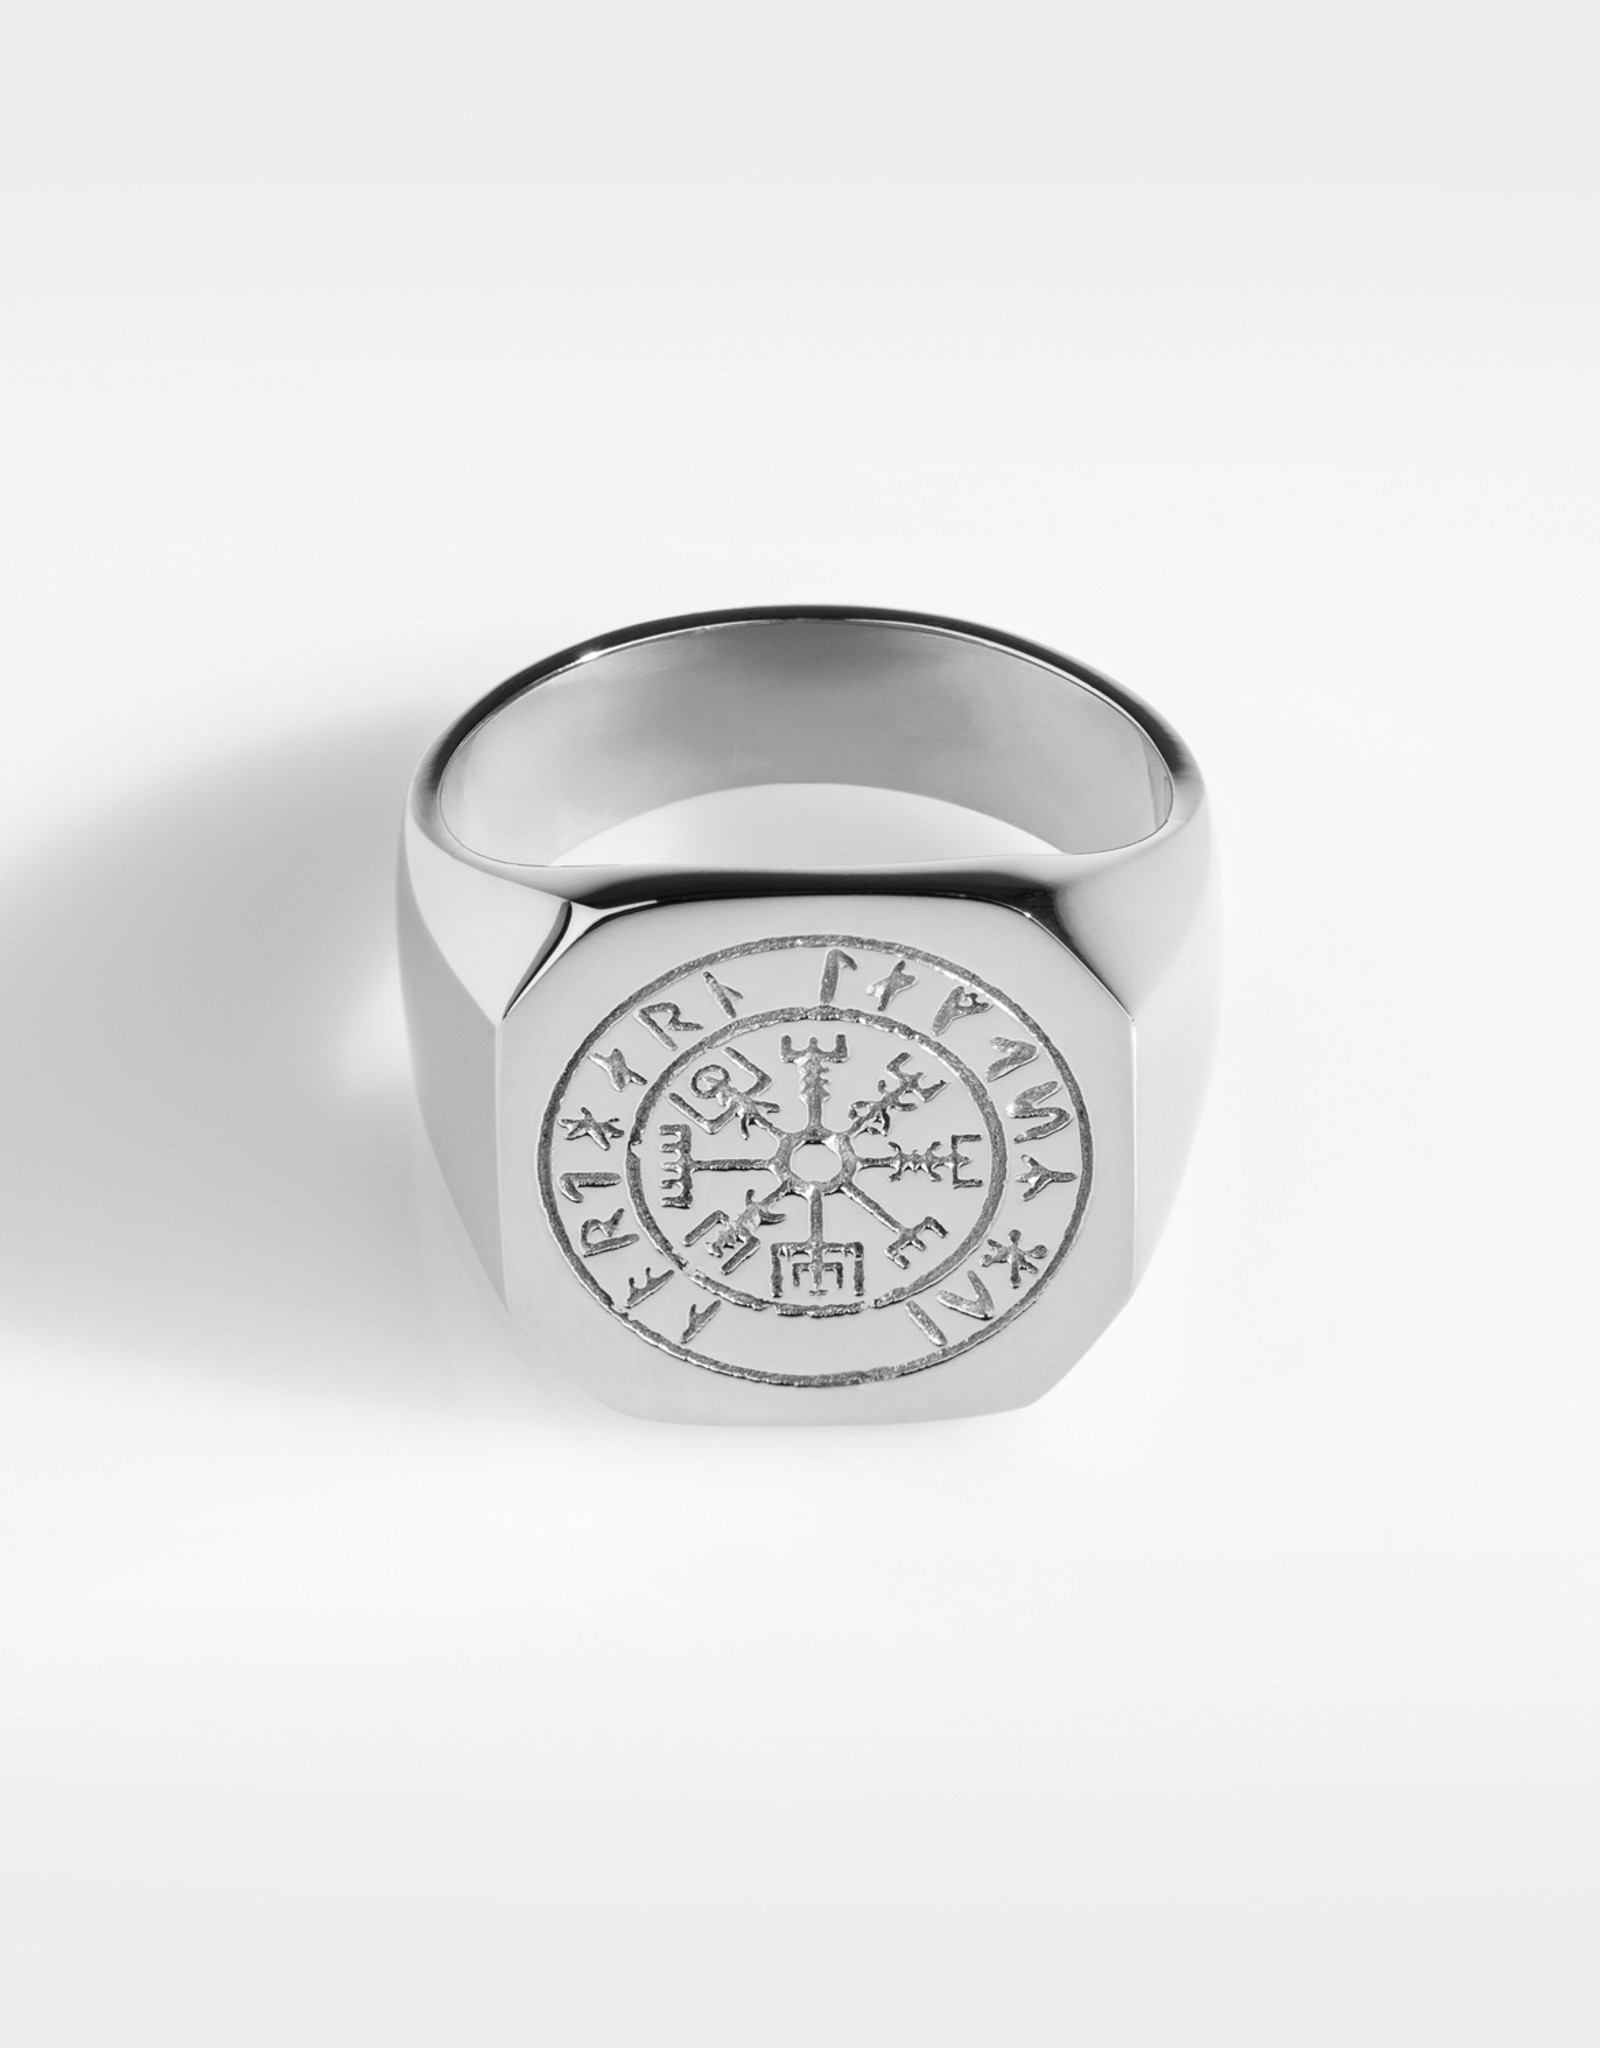 Northern Legacy vegvisir oversize signature- silver tone ring maat 20